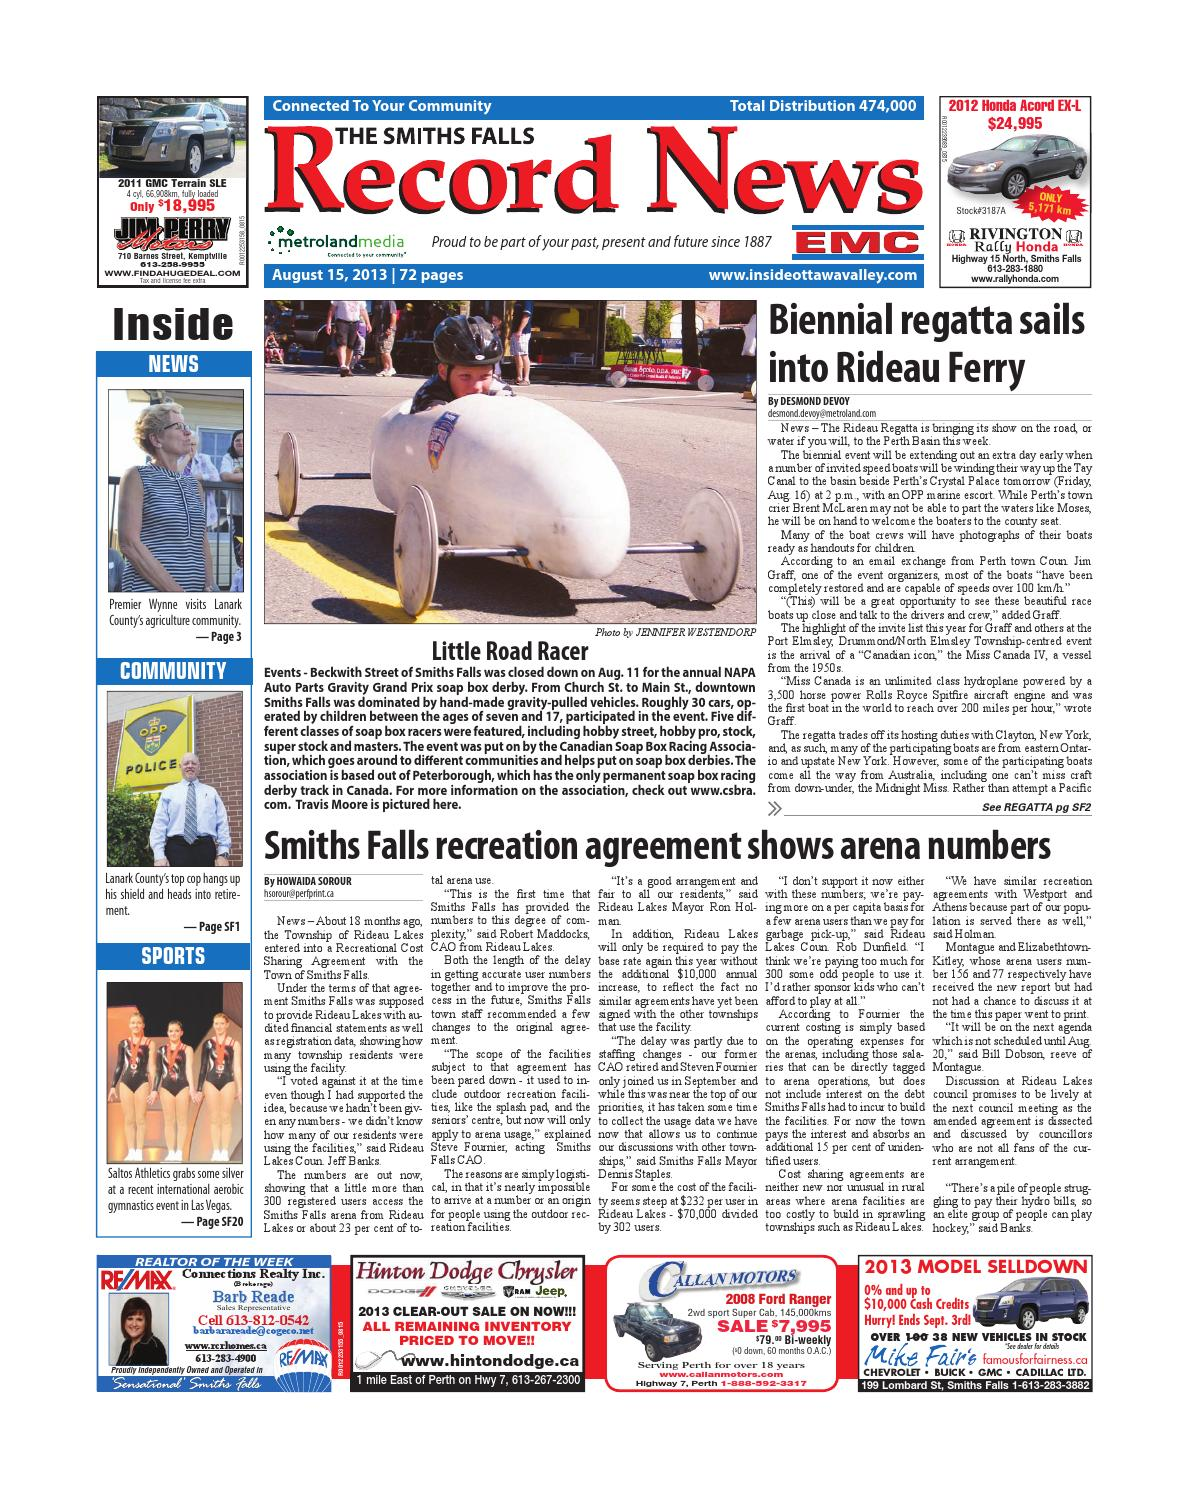 Smithsfalls081513 by Metroland East - Smiths Falls Record News - issuu